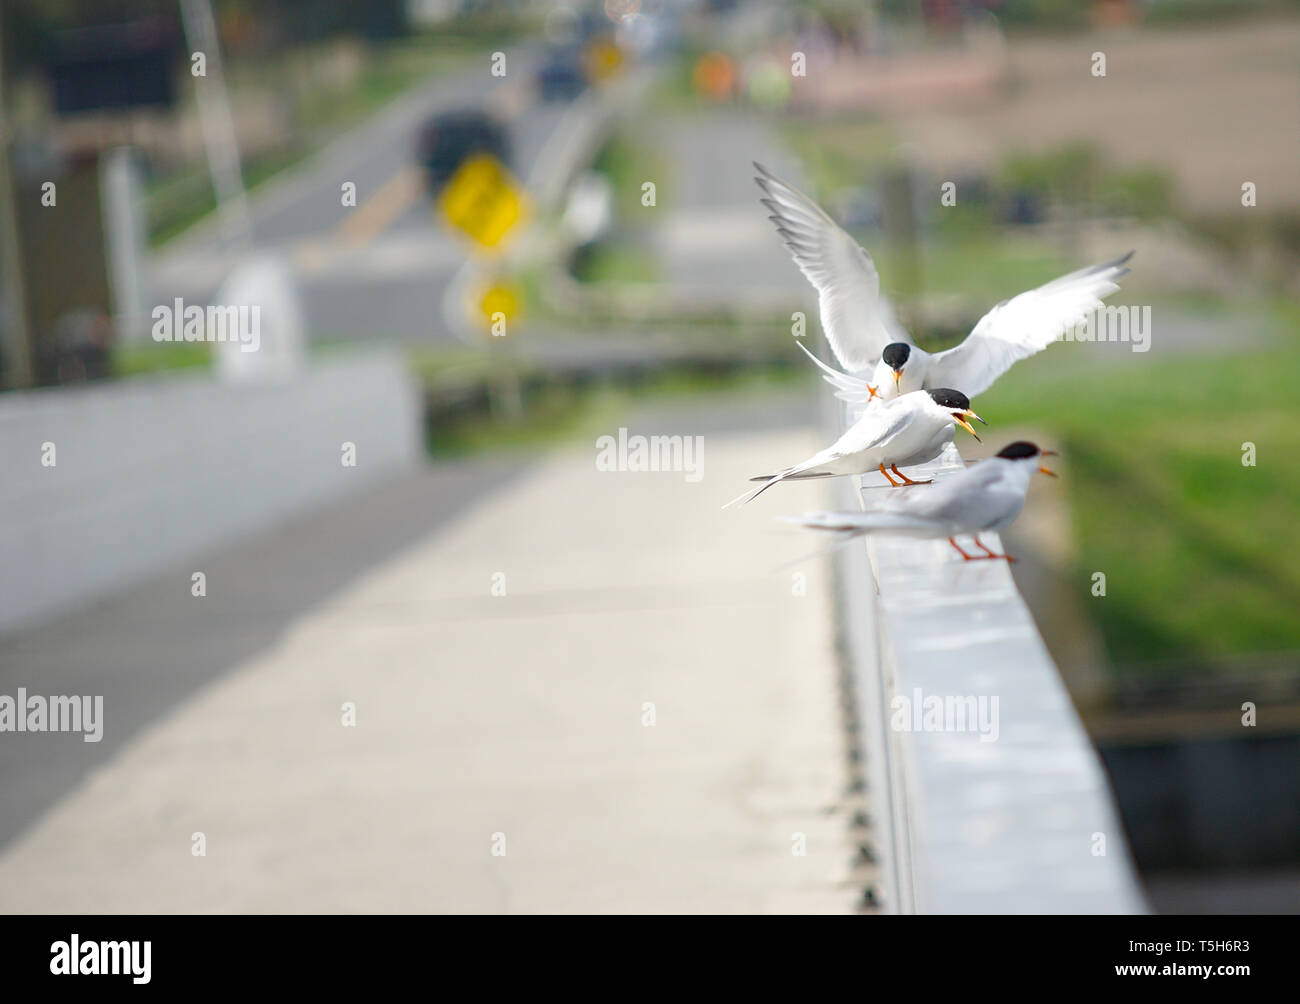 Common Terns flapping wings on bridge railing - Stock Image